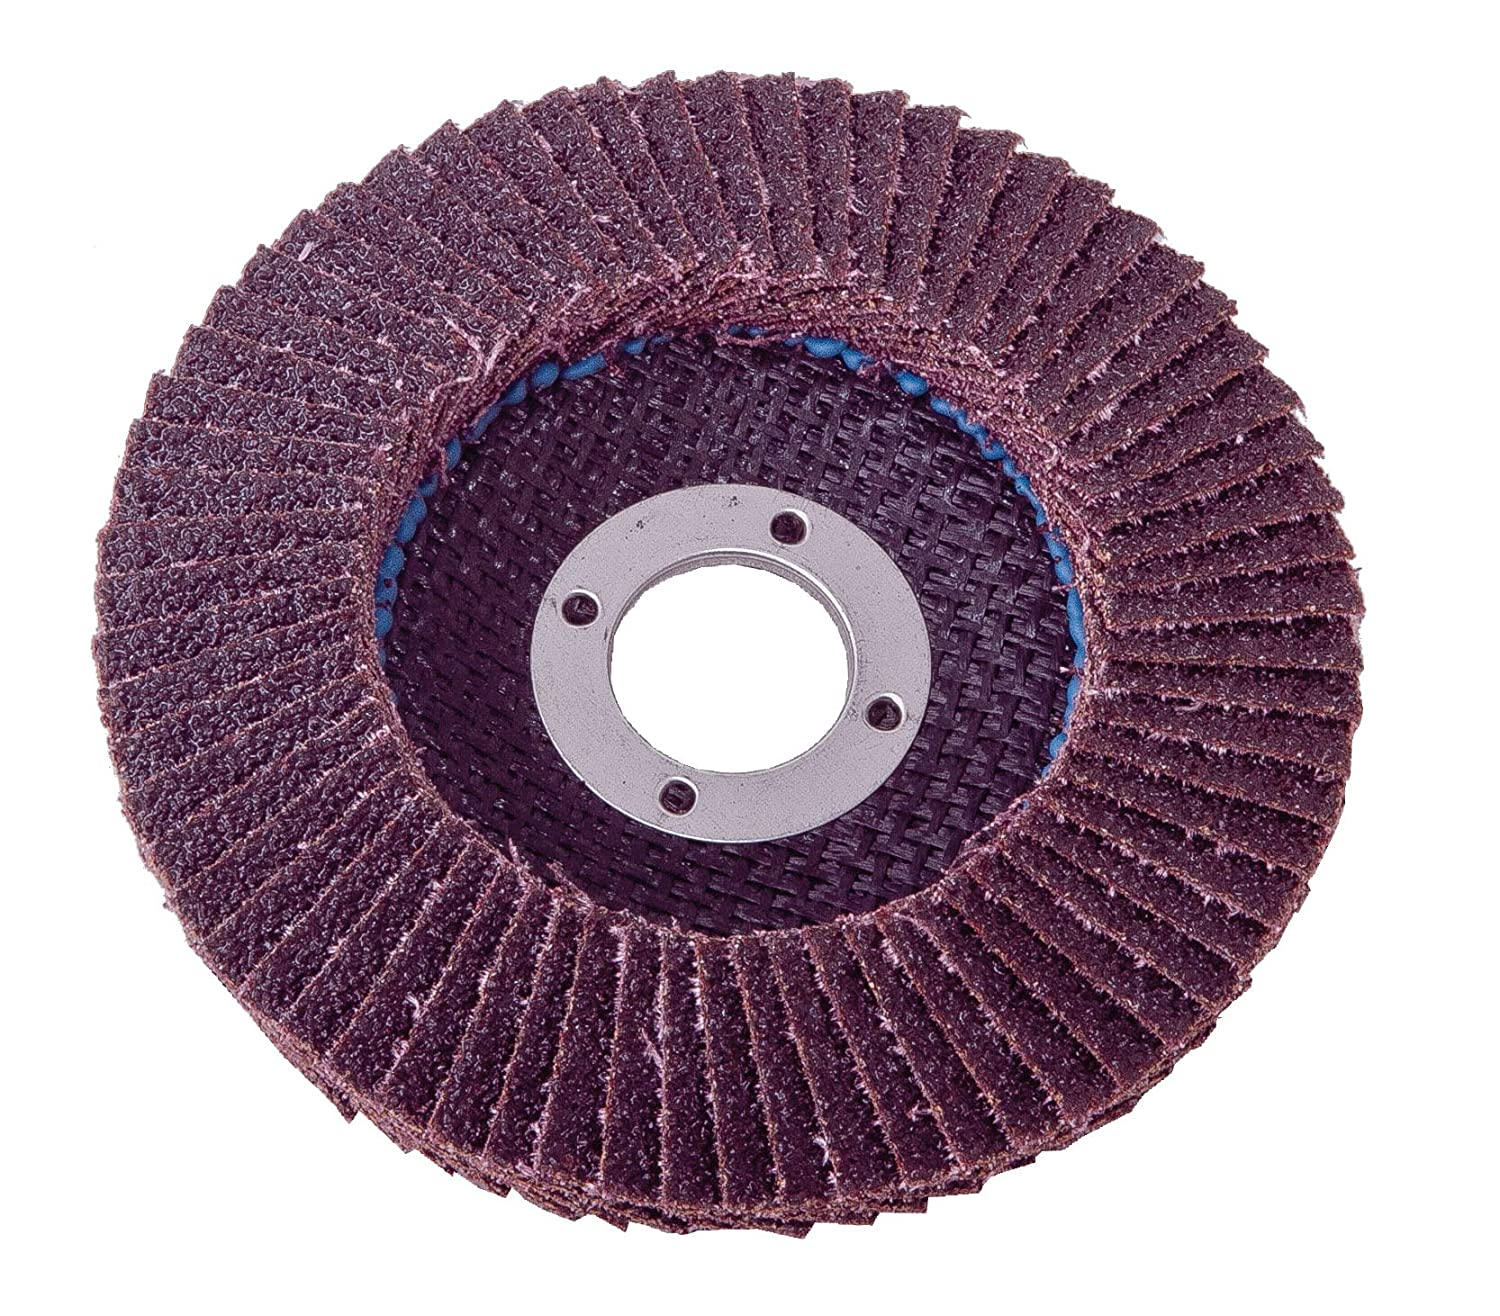 Shark 45736 4.5-Inch by 0.875-Inch Aluminum Beveled Flap Disc, Type 29, Grit-36